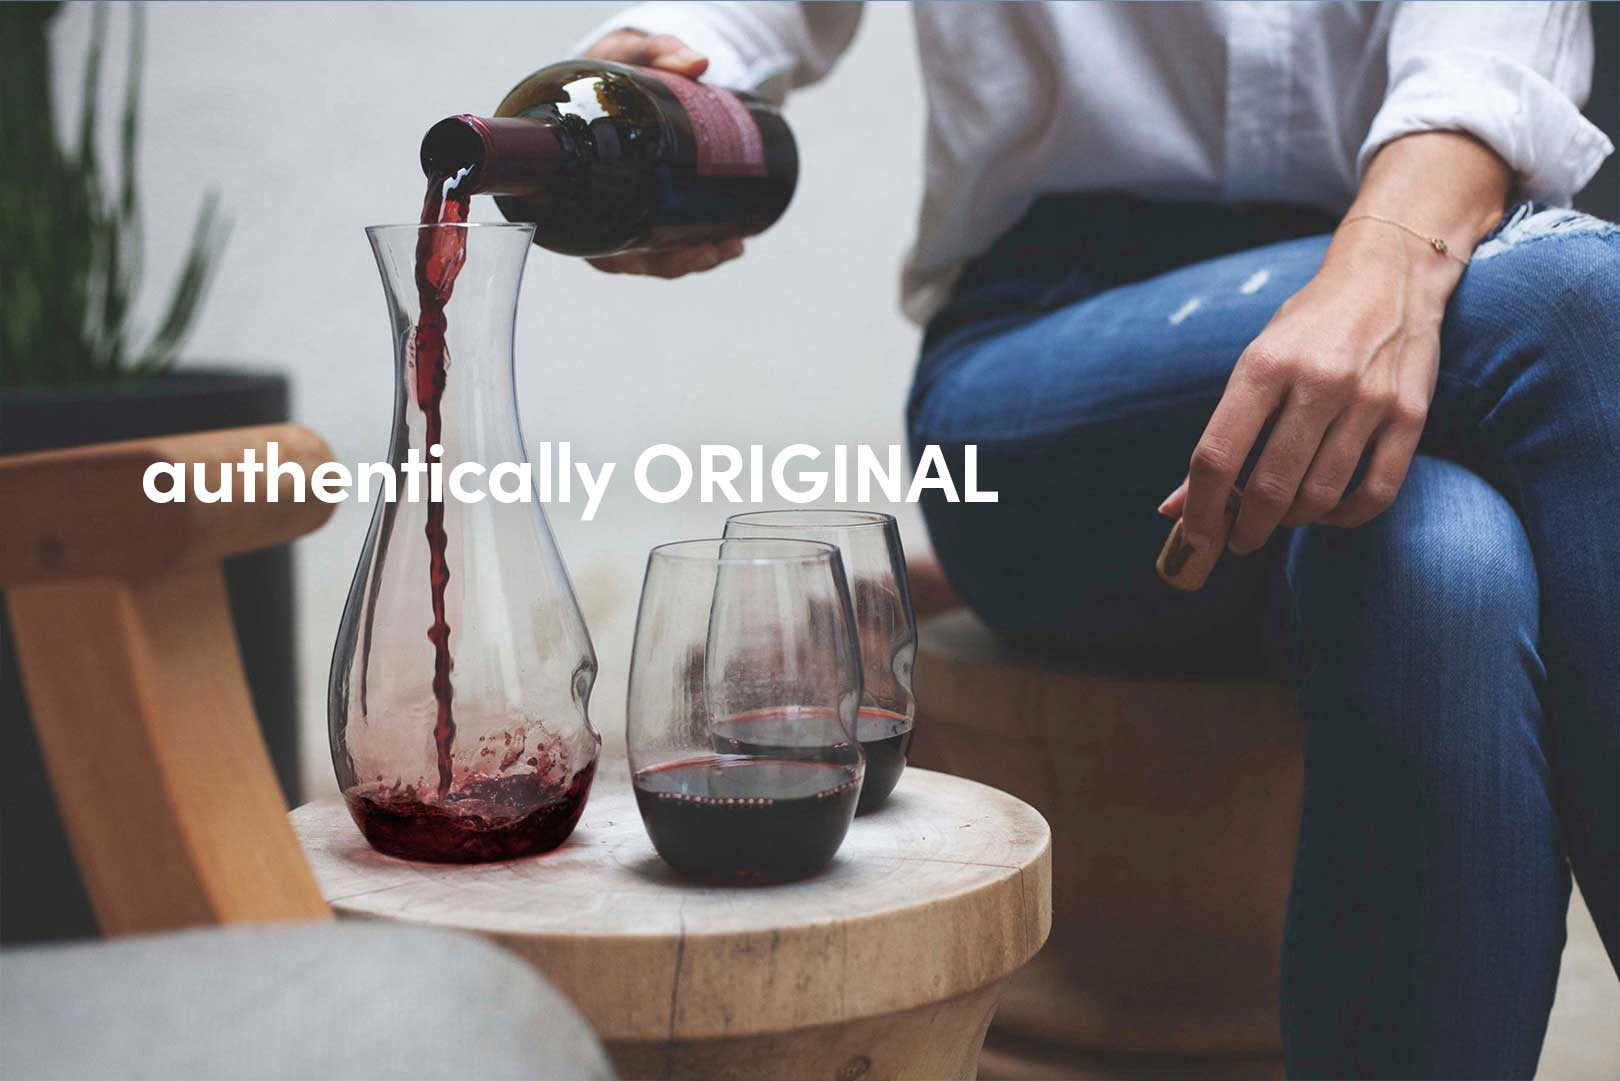 thumb notch best wine glass quality decanter